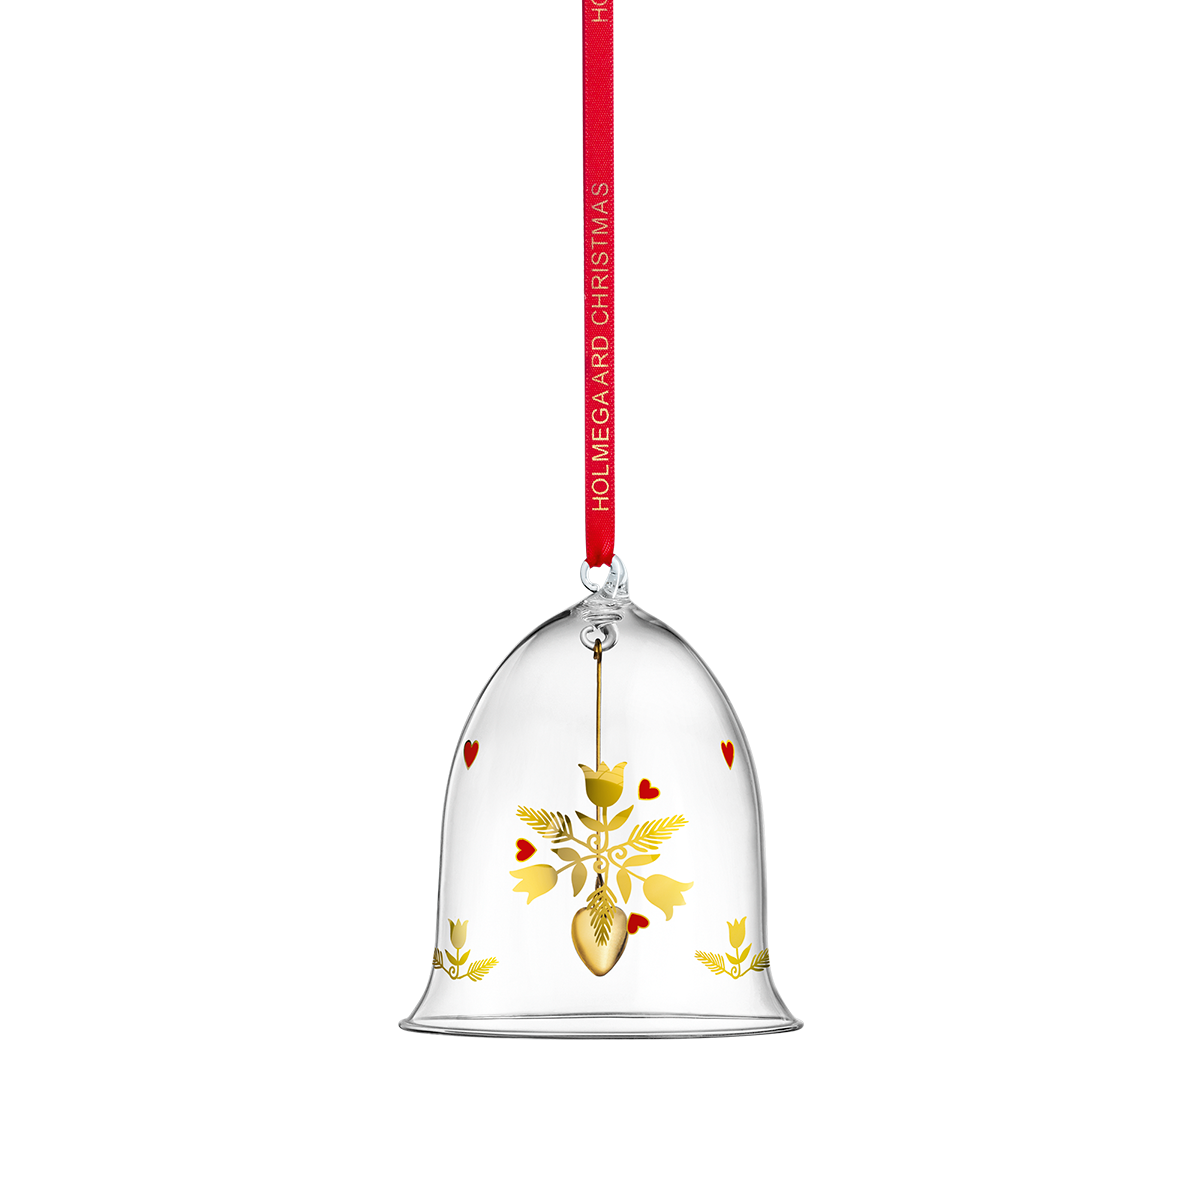 Ann-Sofi Romme Annual Christmas Bell 2020 Clear Large